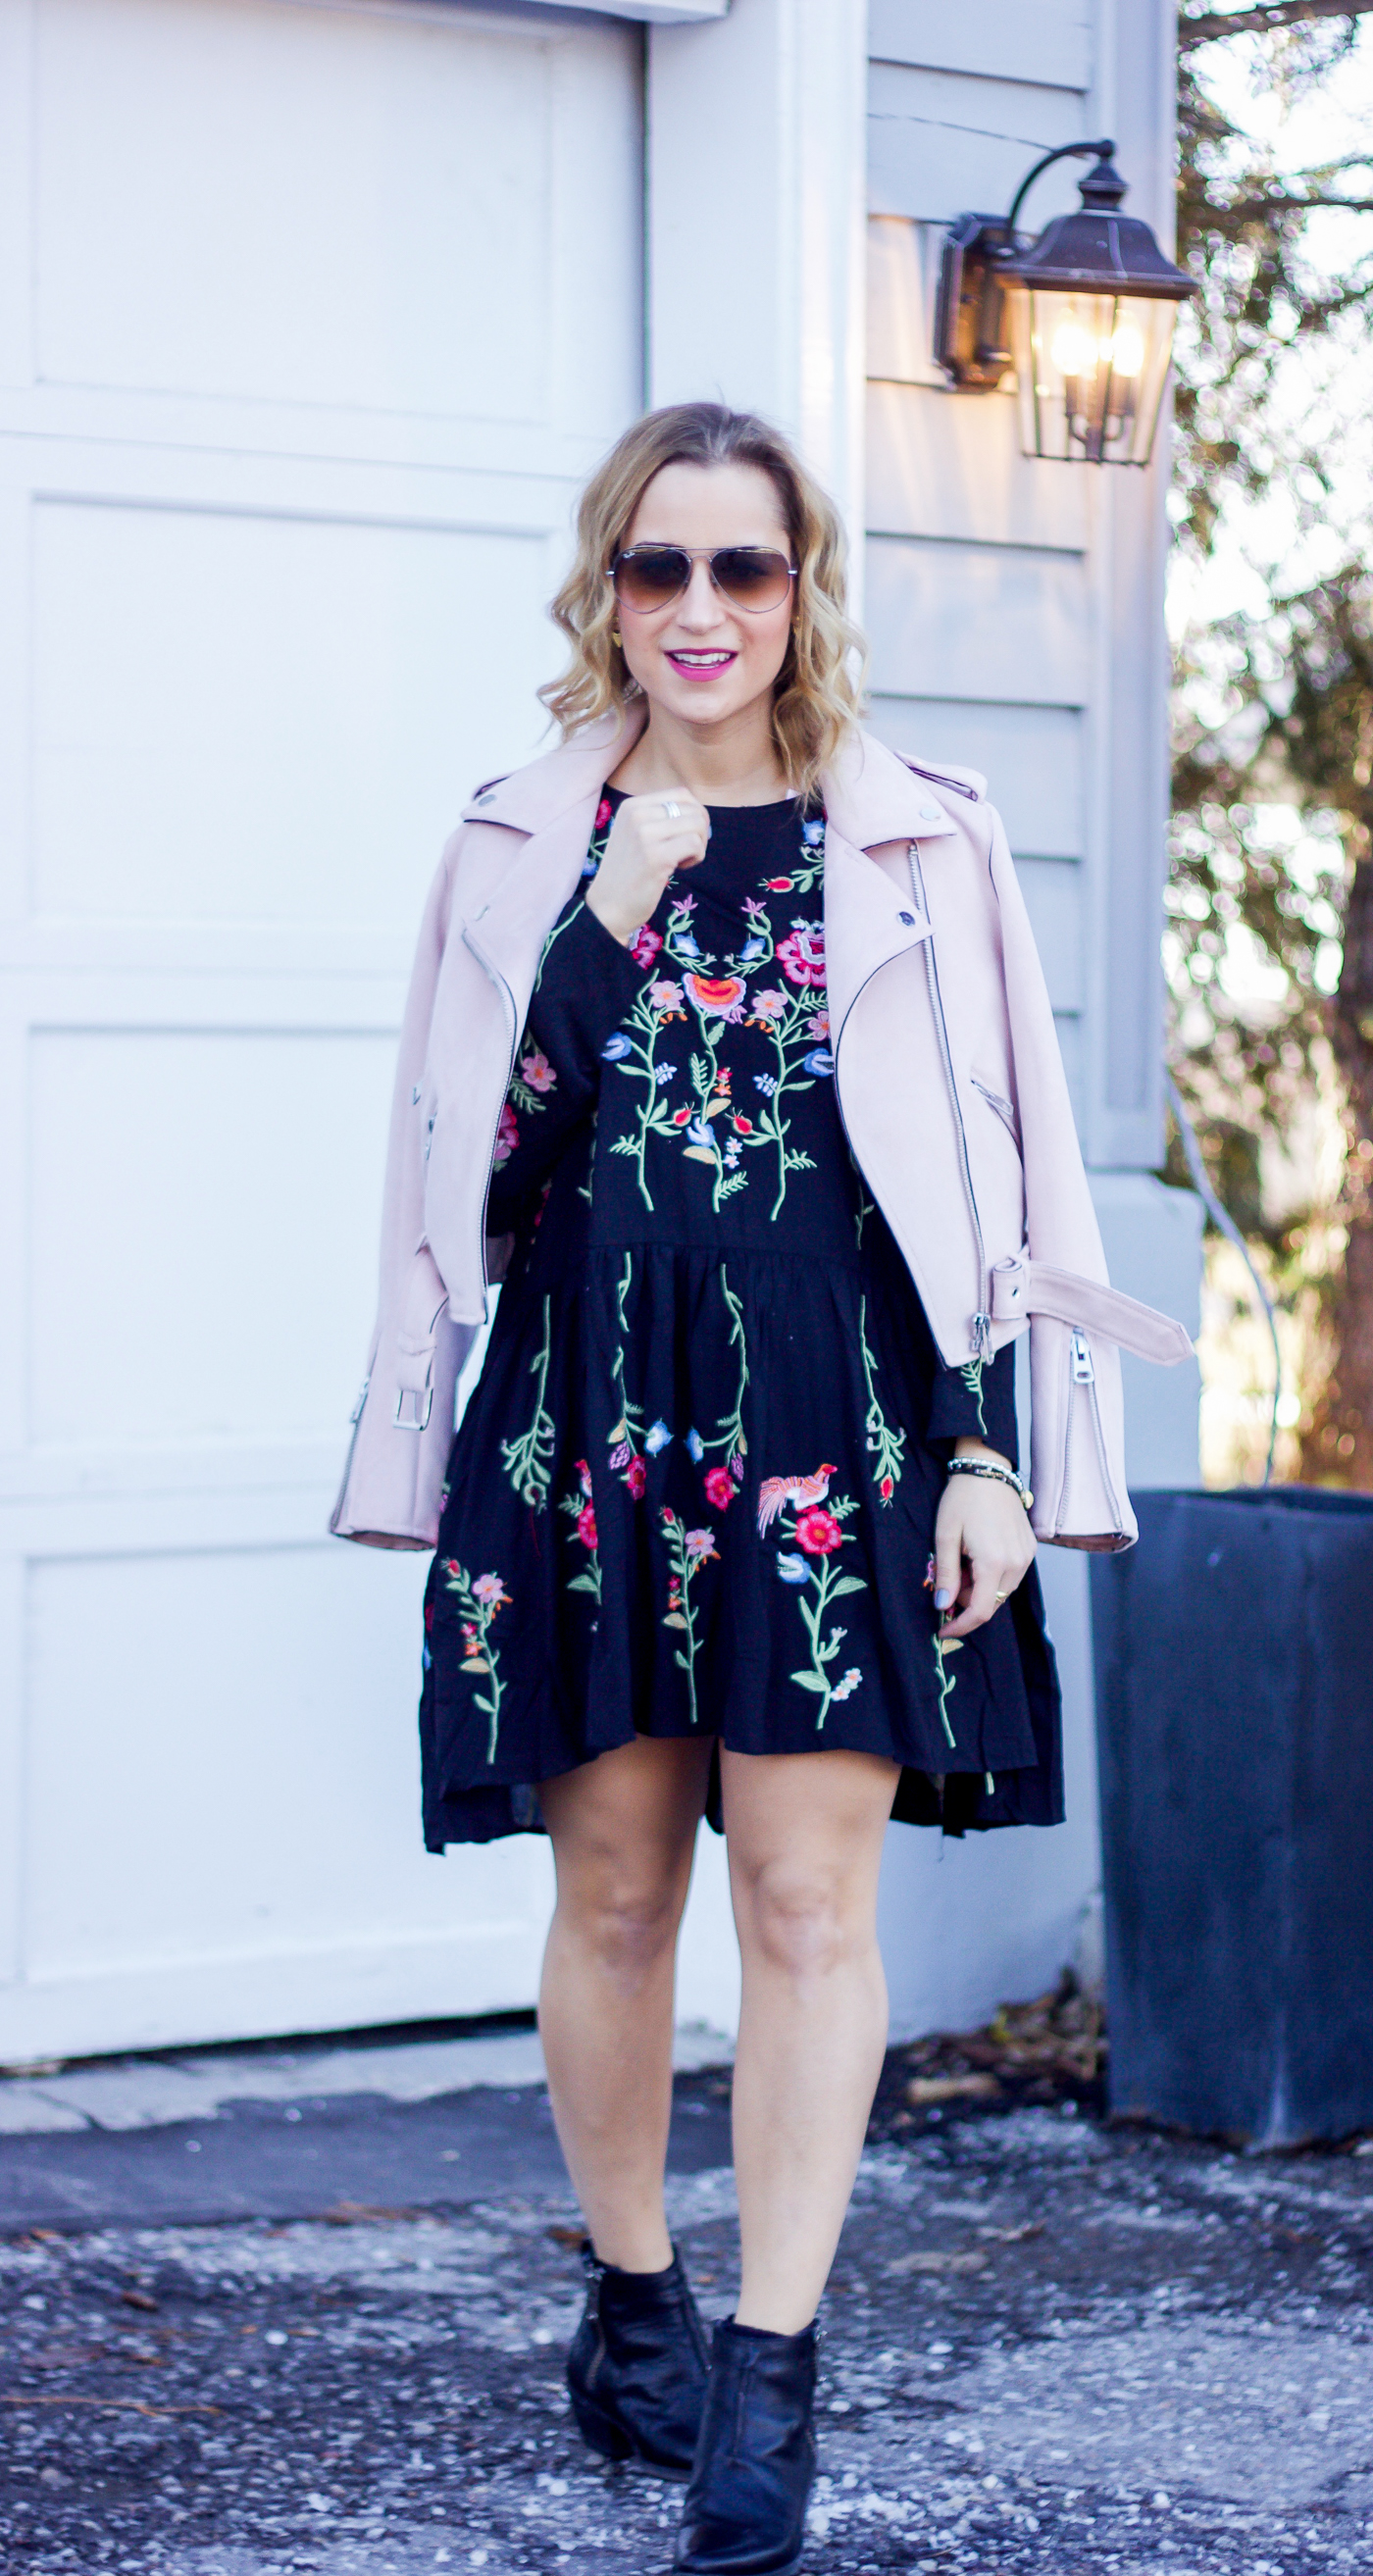 Canadian life and style blogger, Jackie of Something About That is wearing a pastel pink motorcycle jacket from Zara with a floral embroidered dress from Chicwish